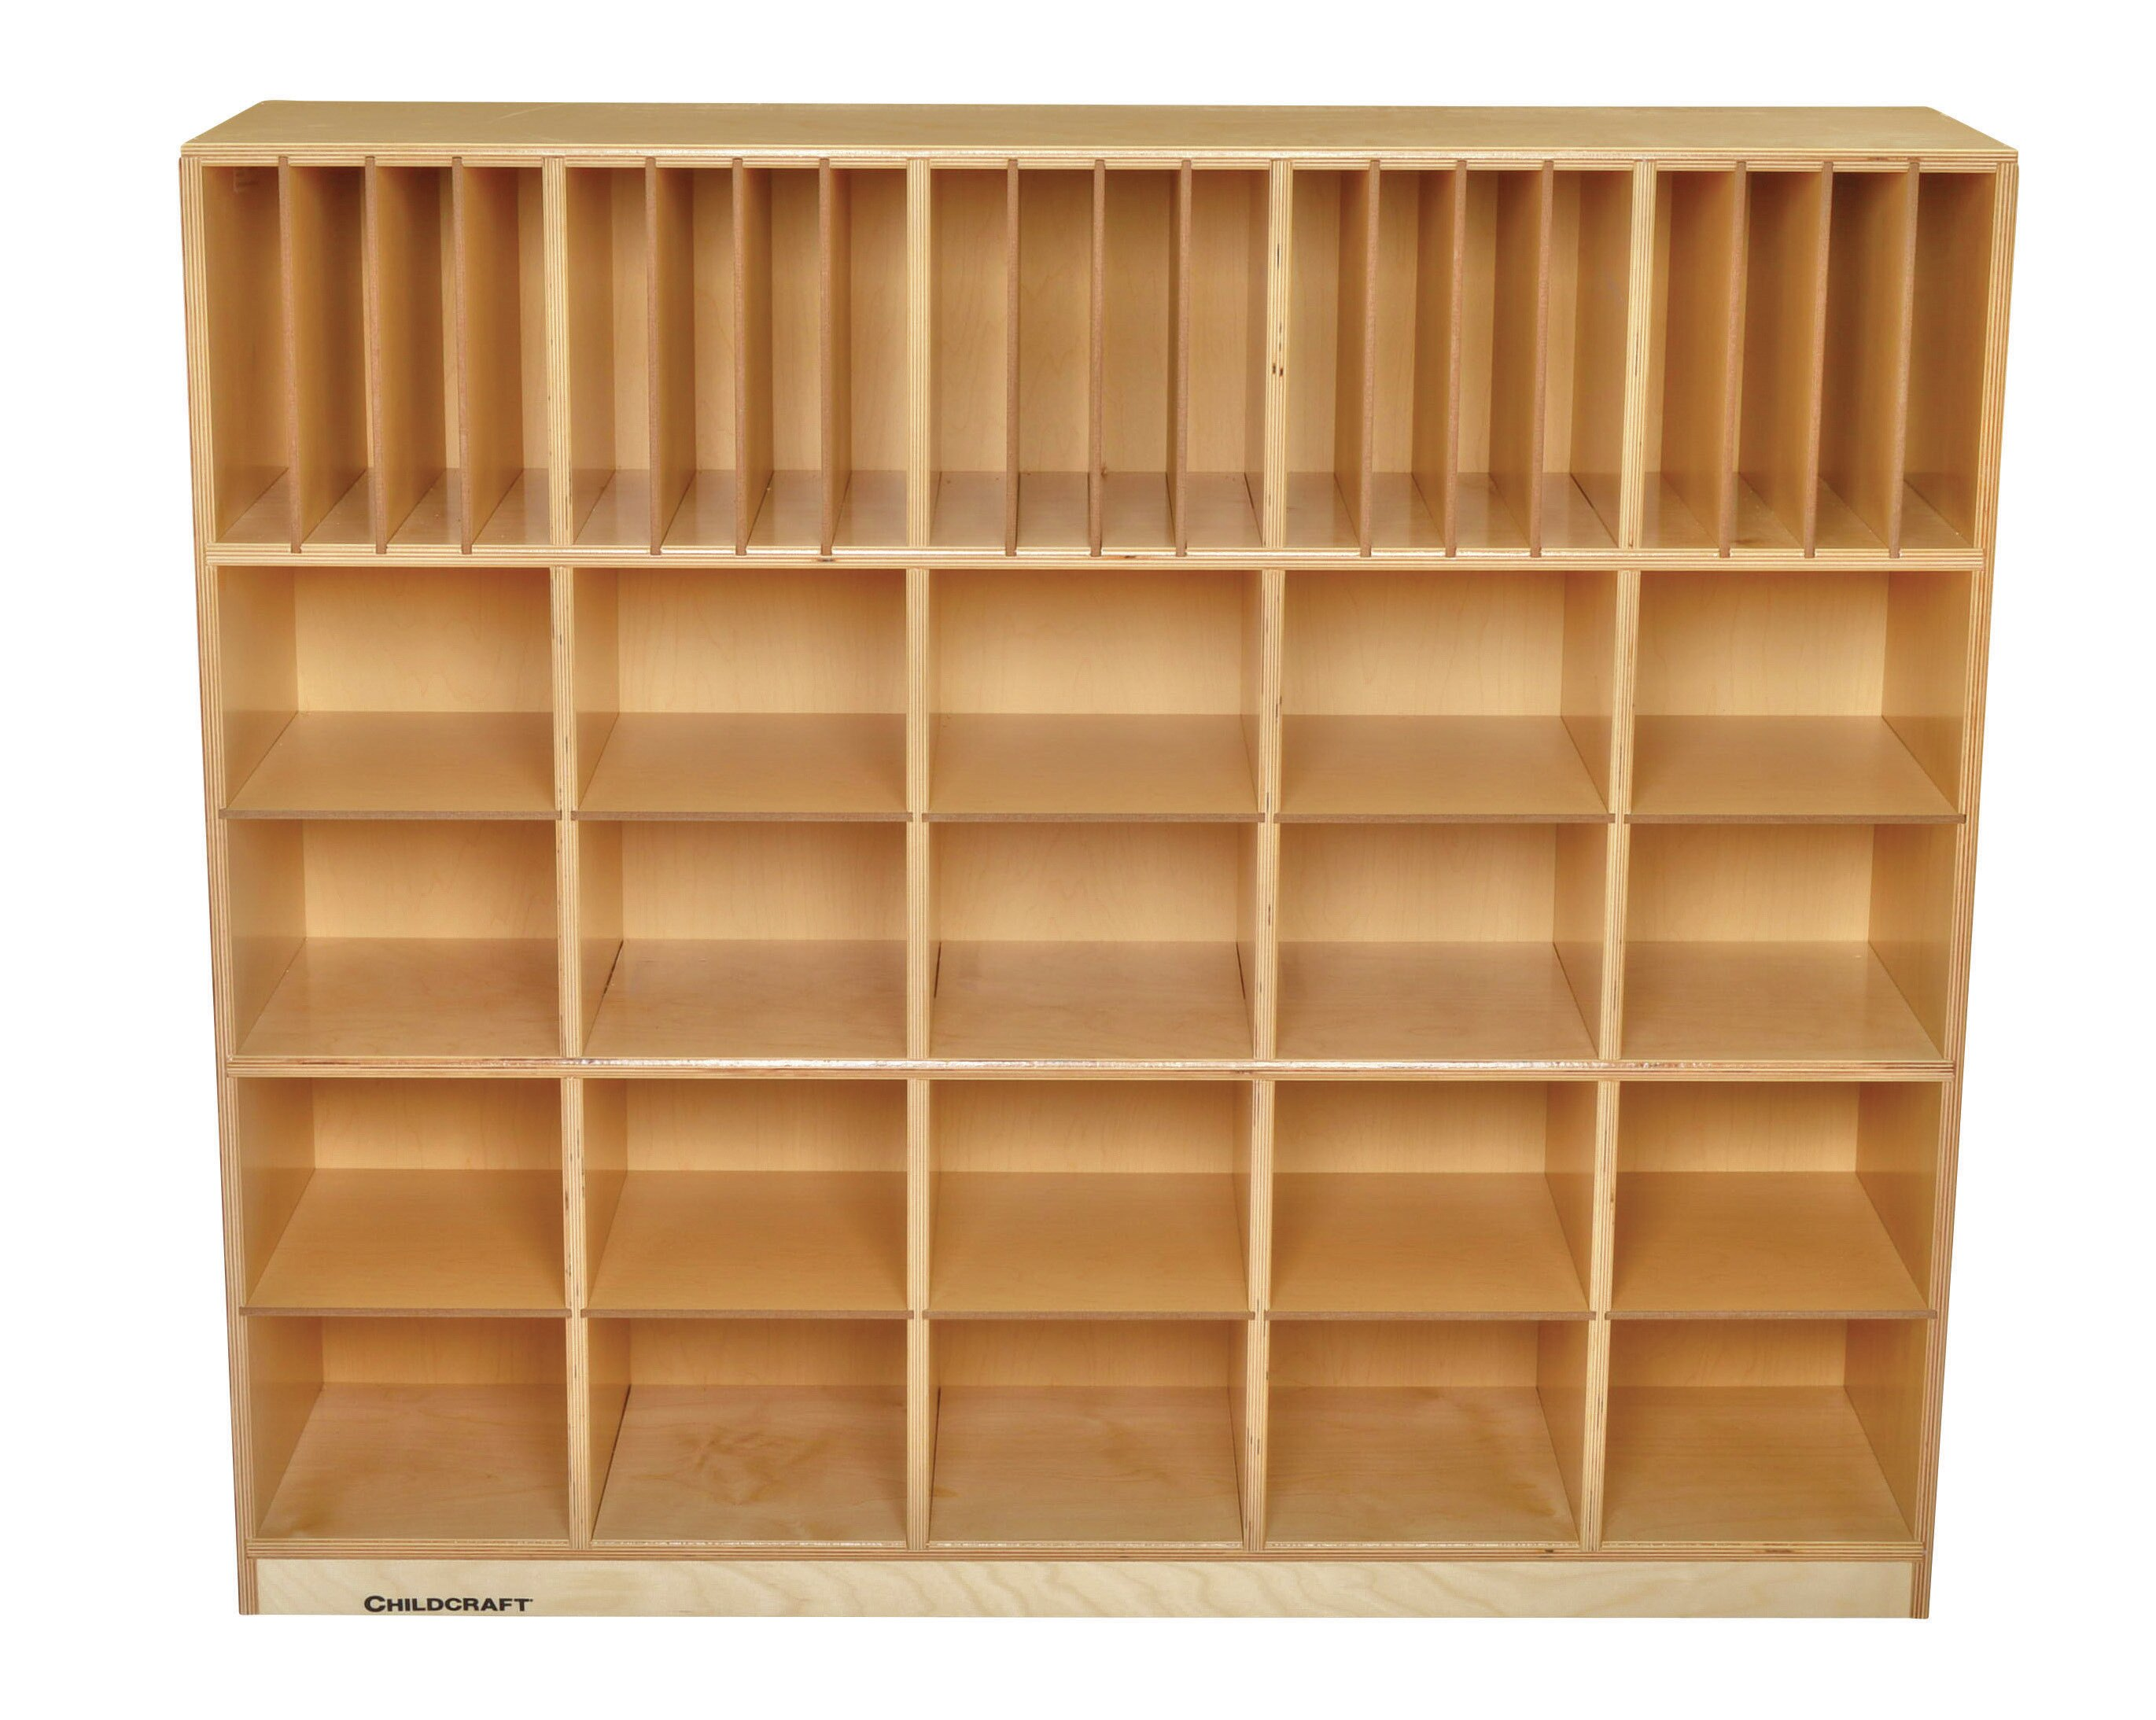 Childcraft 40 Compartment Cubby With Casters Wayfair